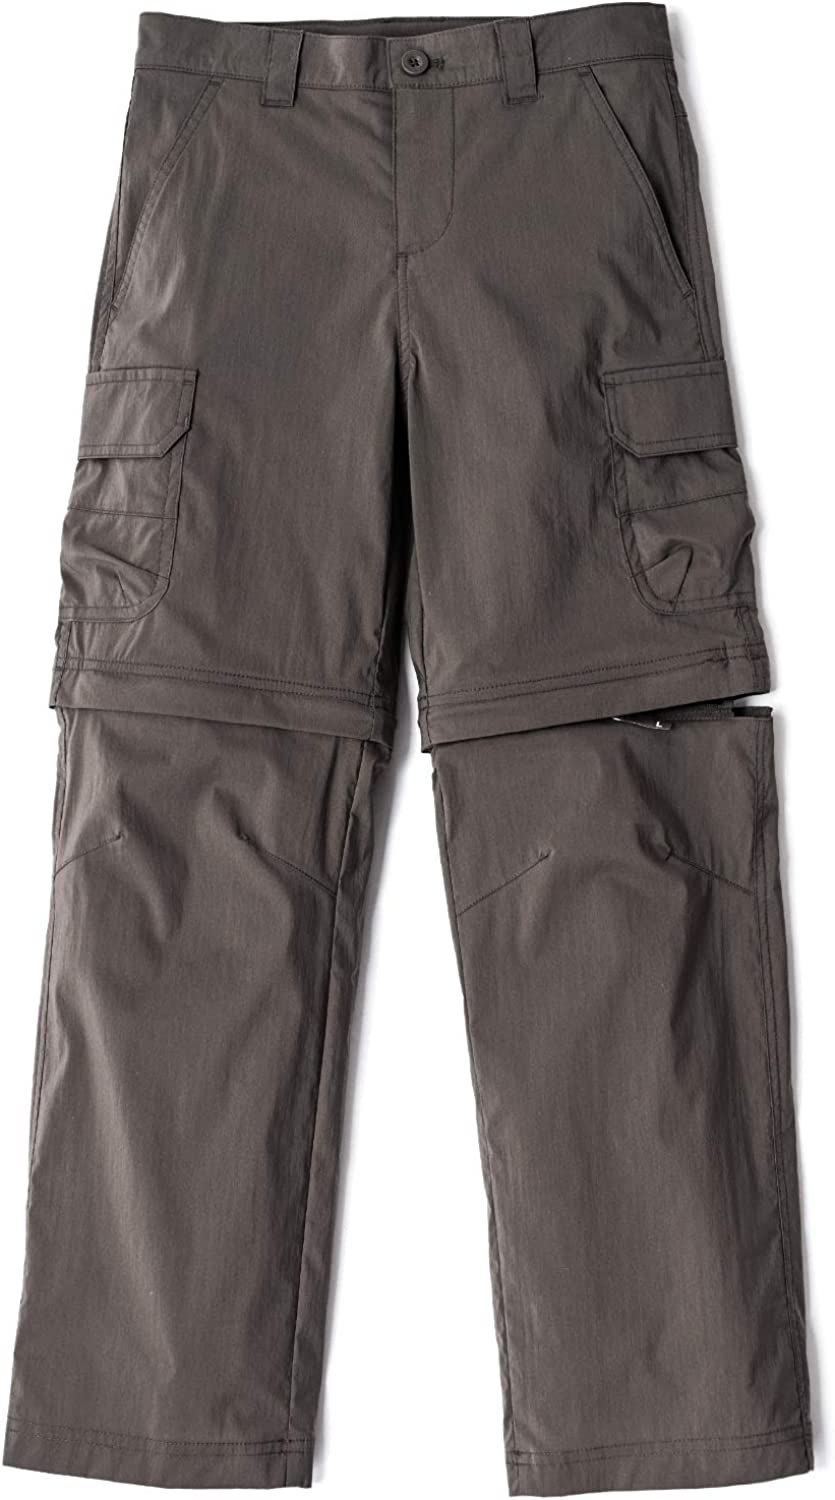 CQR Kids Youth Hiking Cargo Pants, UPF 50+ Quick Dry Convertible Zip Off/Regular Pants, Outdoor Camping Pants